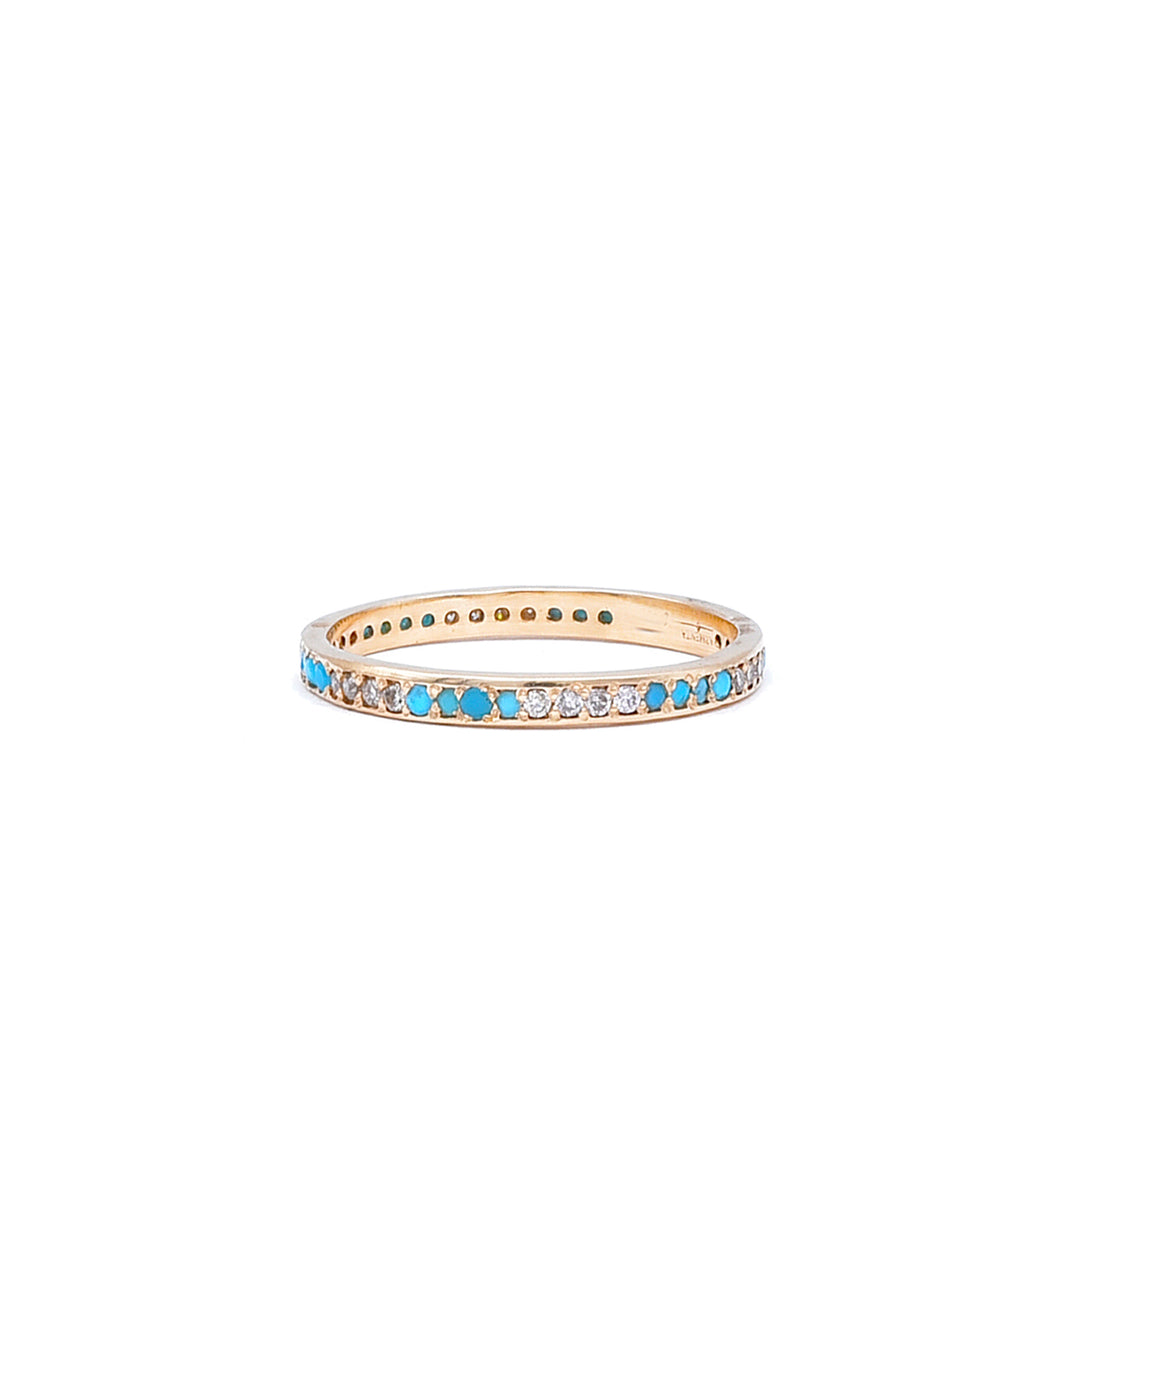 Eternity band with diamonds and turquoise